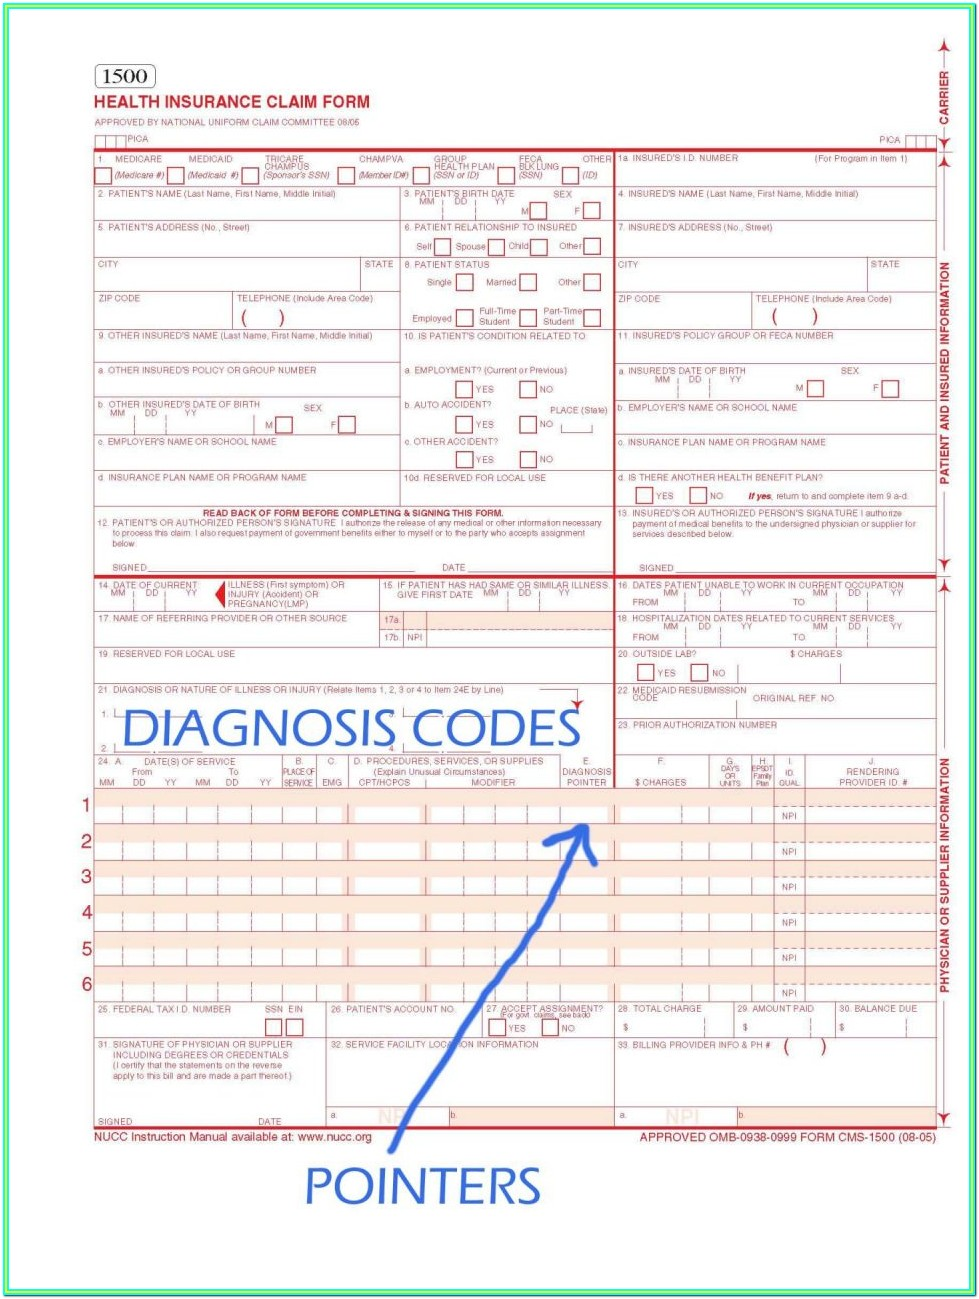 Health Insurance Claim Form Cms 1500 Pdf